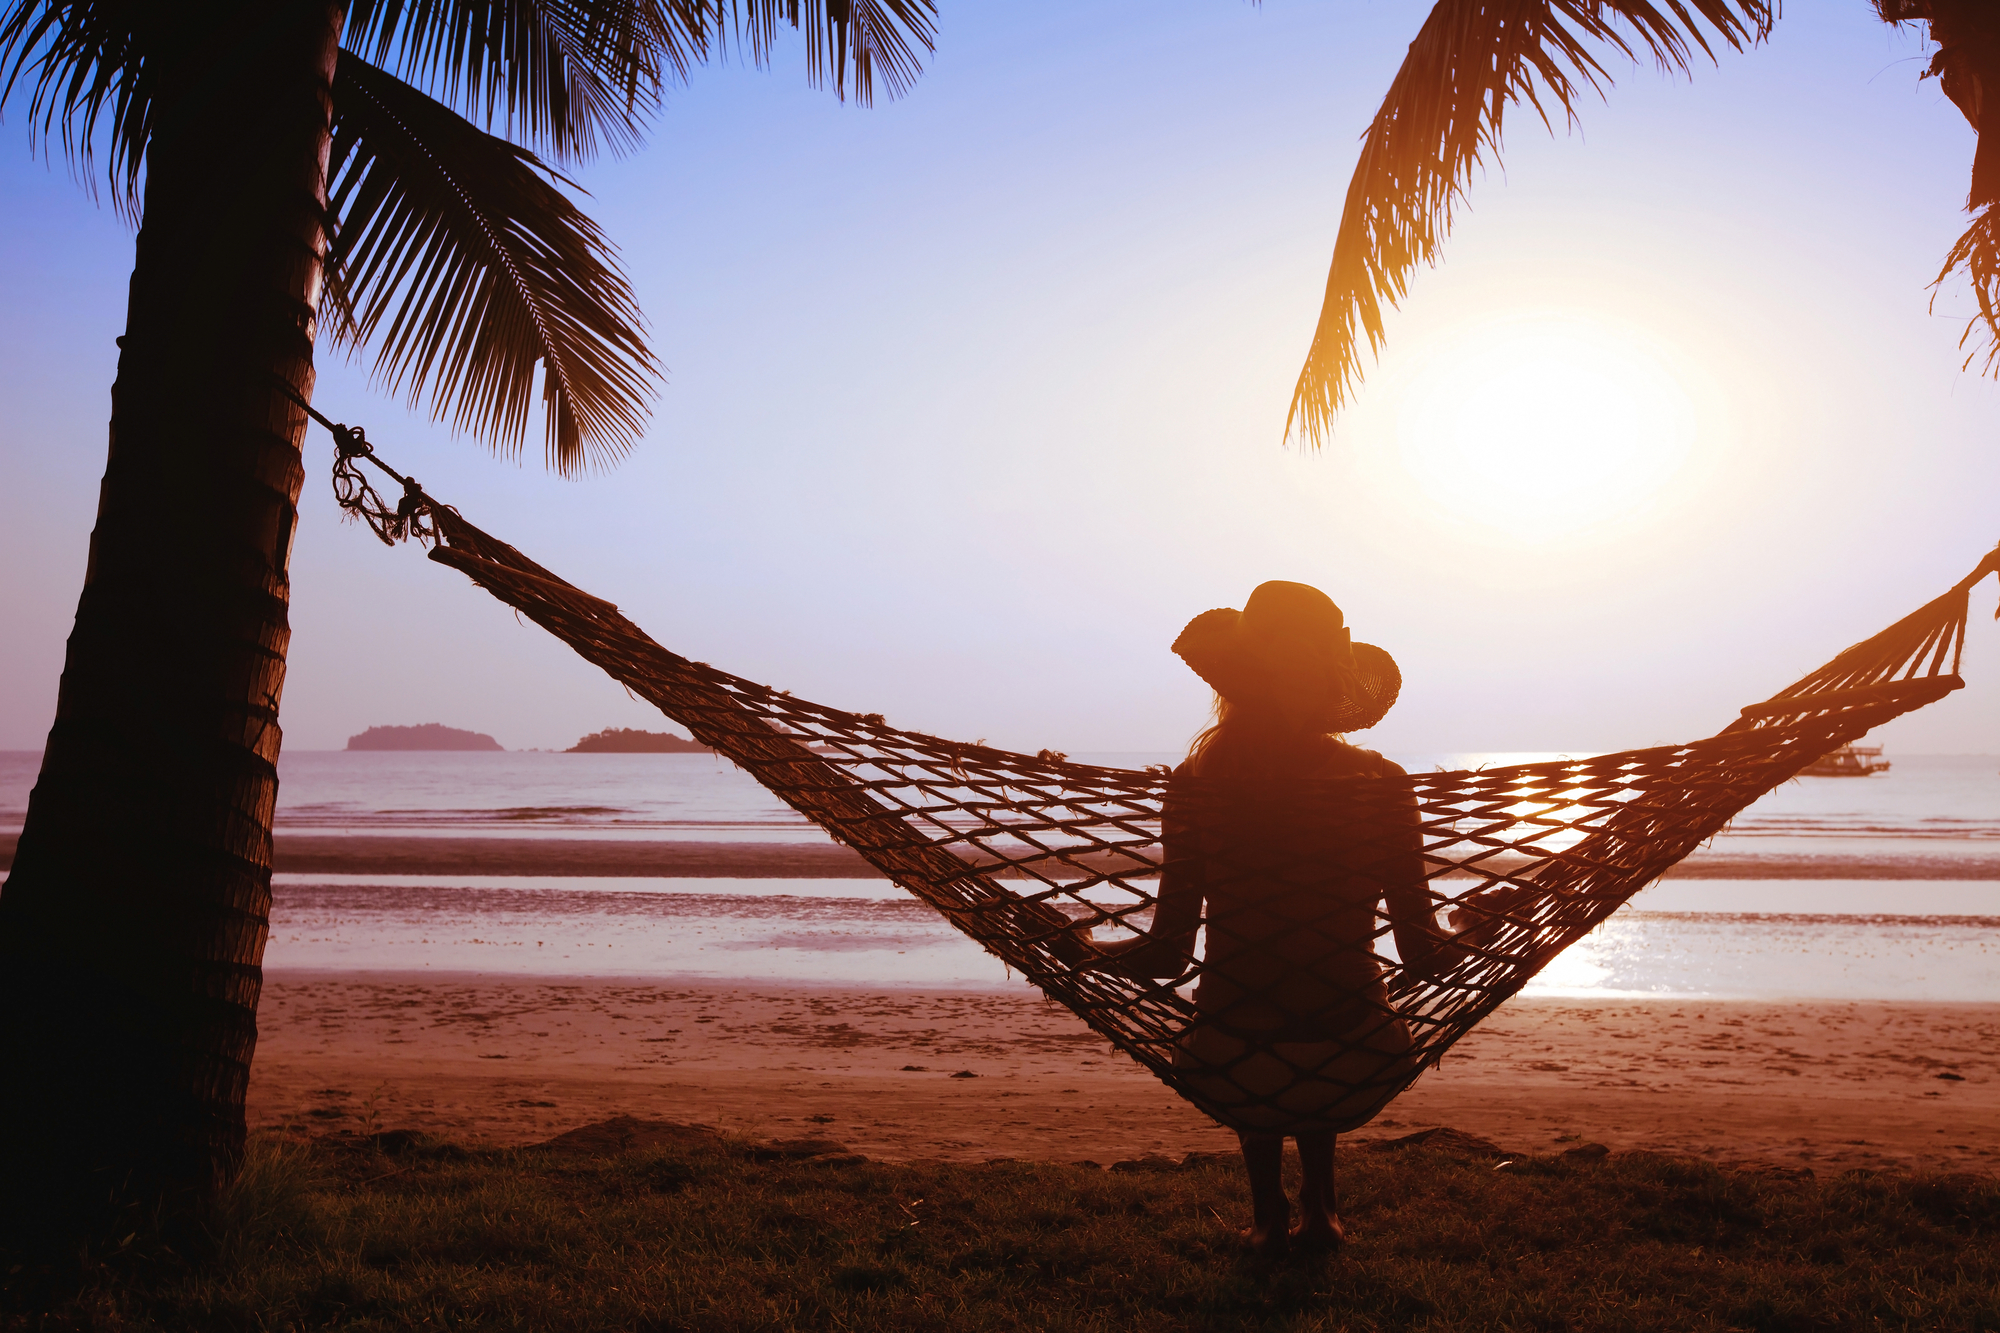 Woman relaxing on hammock looking out to see